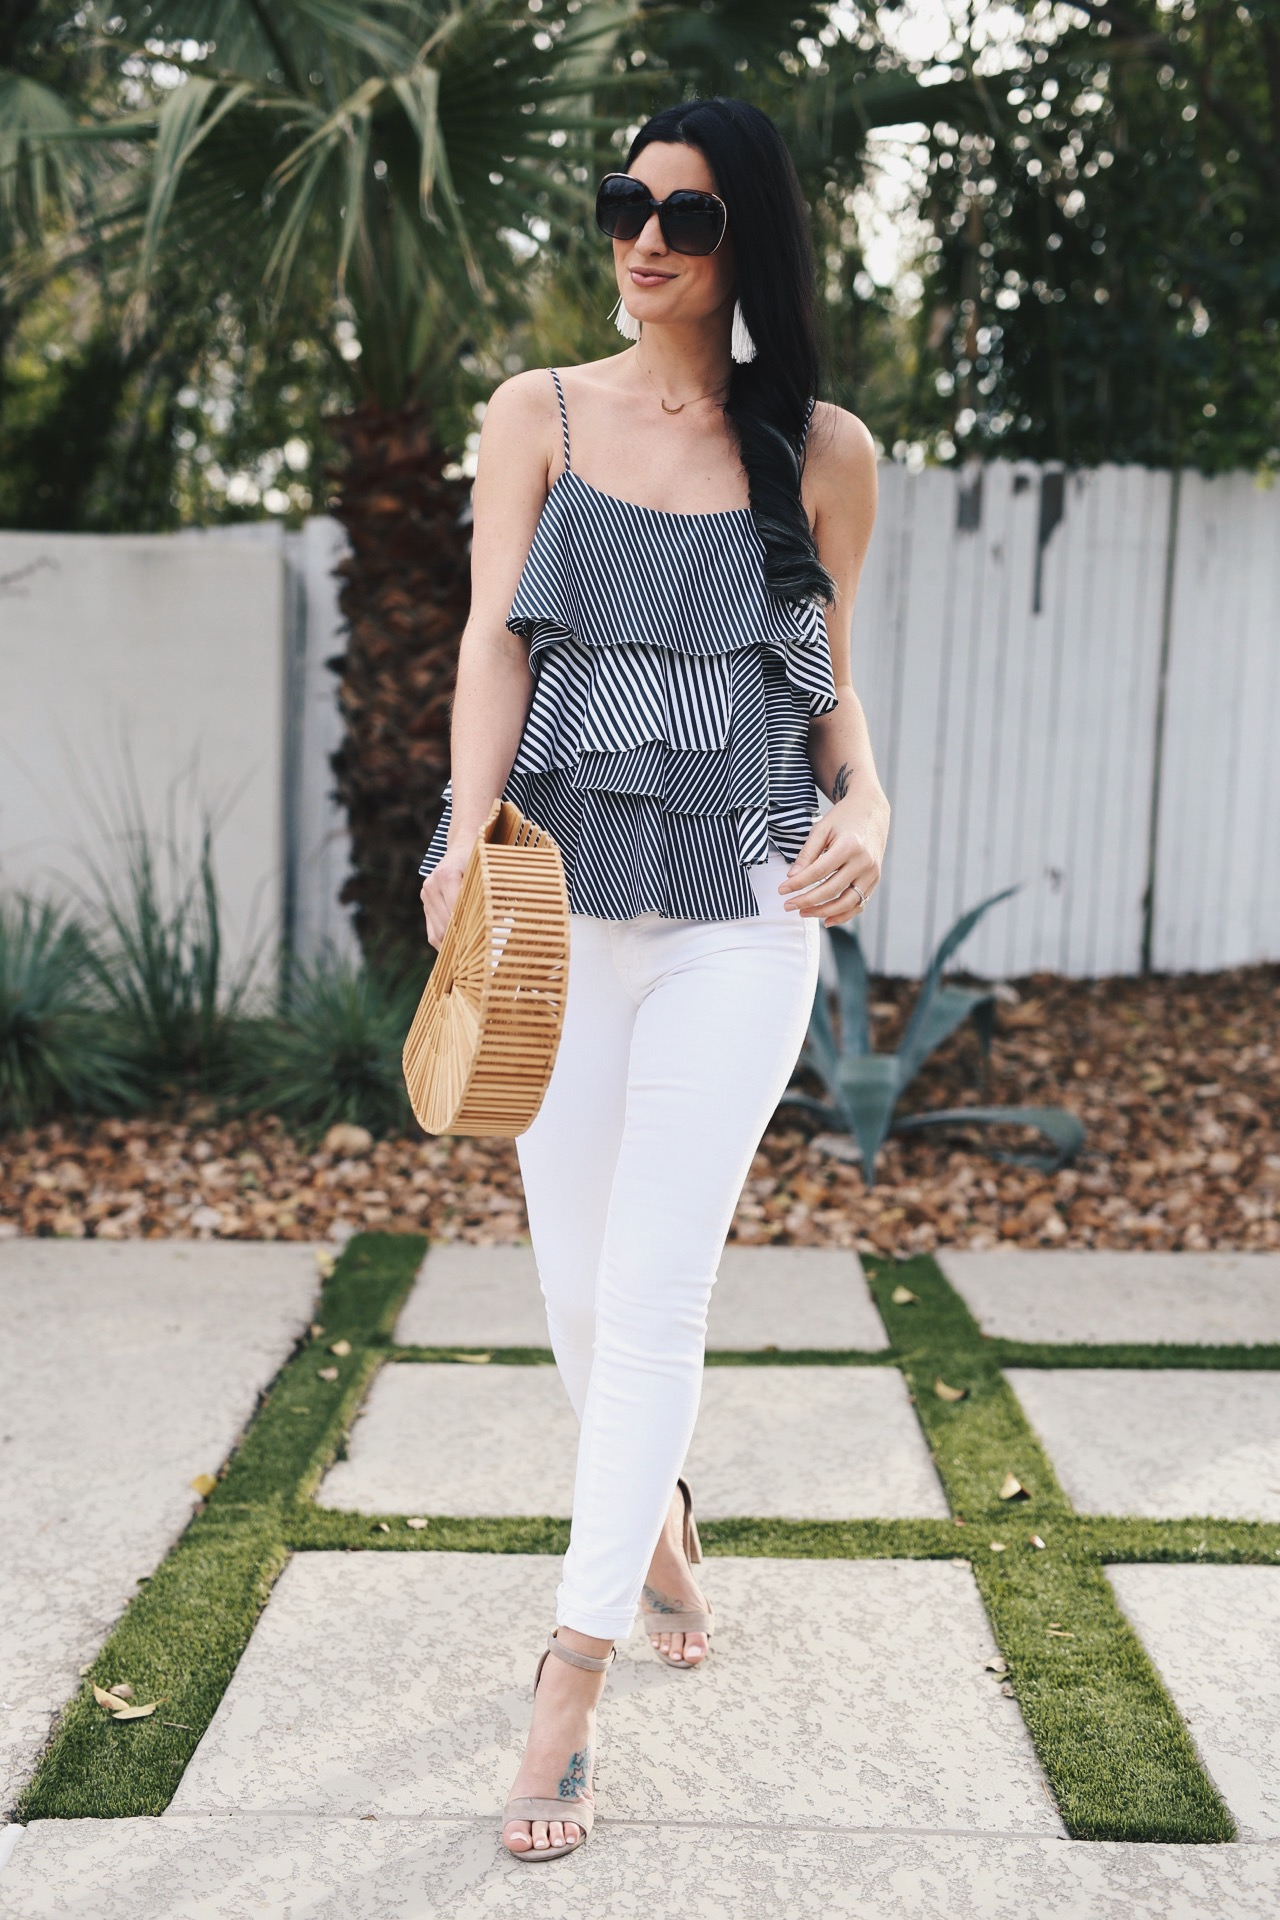 how to find the best pair of white denim | summer outfit ideas | white denim | what to pack for summer vacation | summer style ideas || Dressed to Kill #whitedenim #summeroutfit #packingtips - Finding the Perfect Pair of White Denim by popular Austin fashion blogger Dressed to Kill